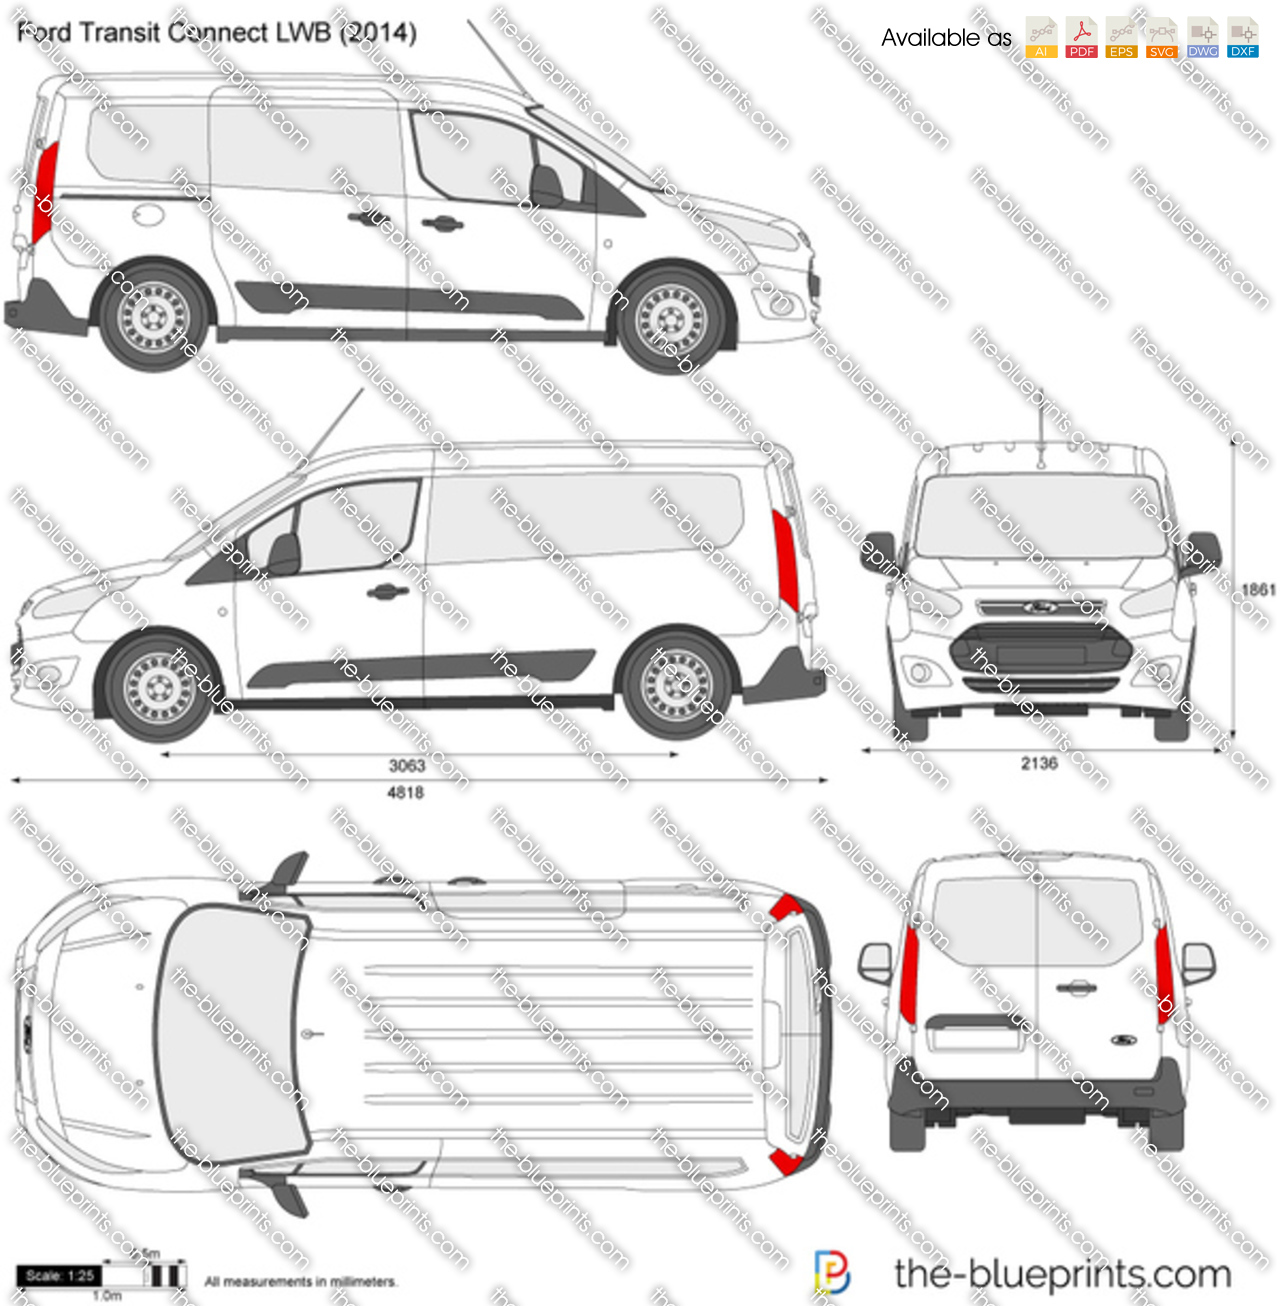 2014 Ford Transit Connect LWB